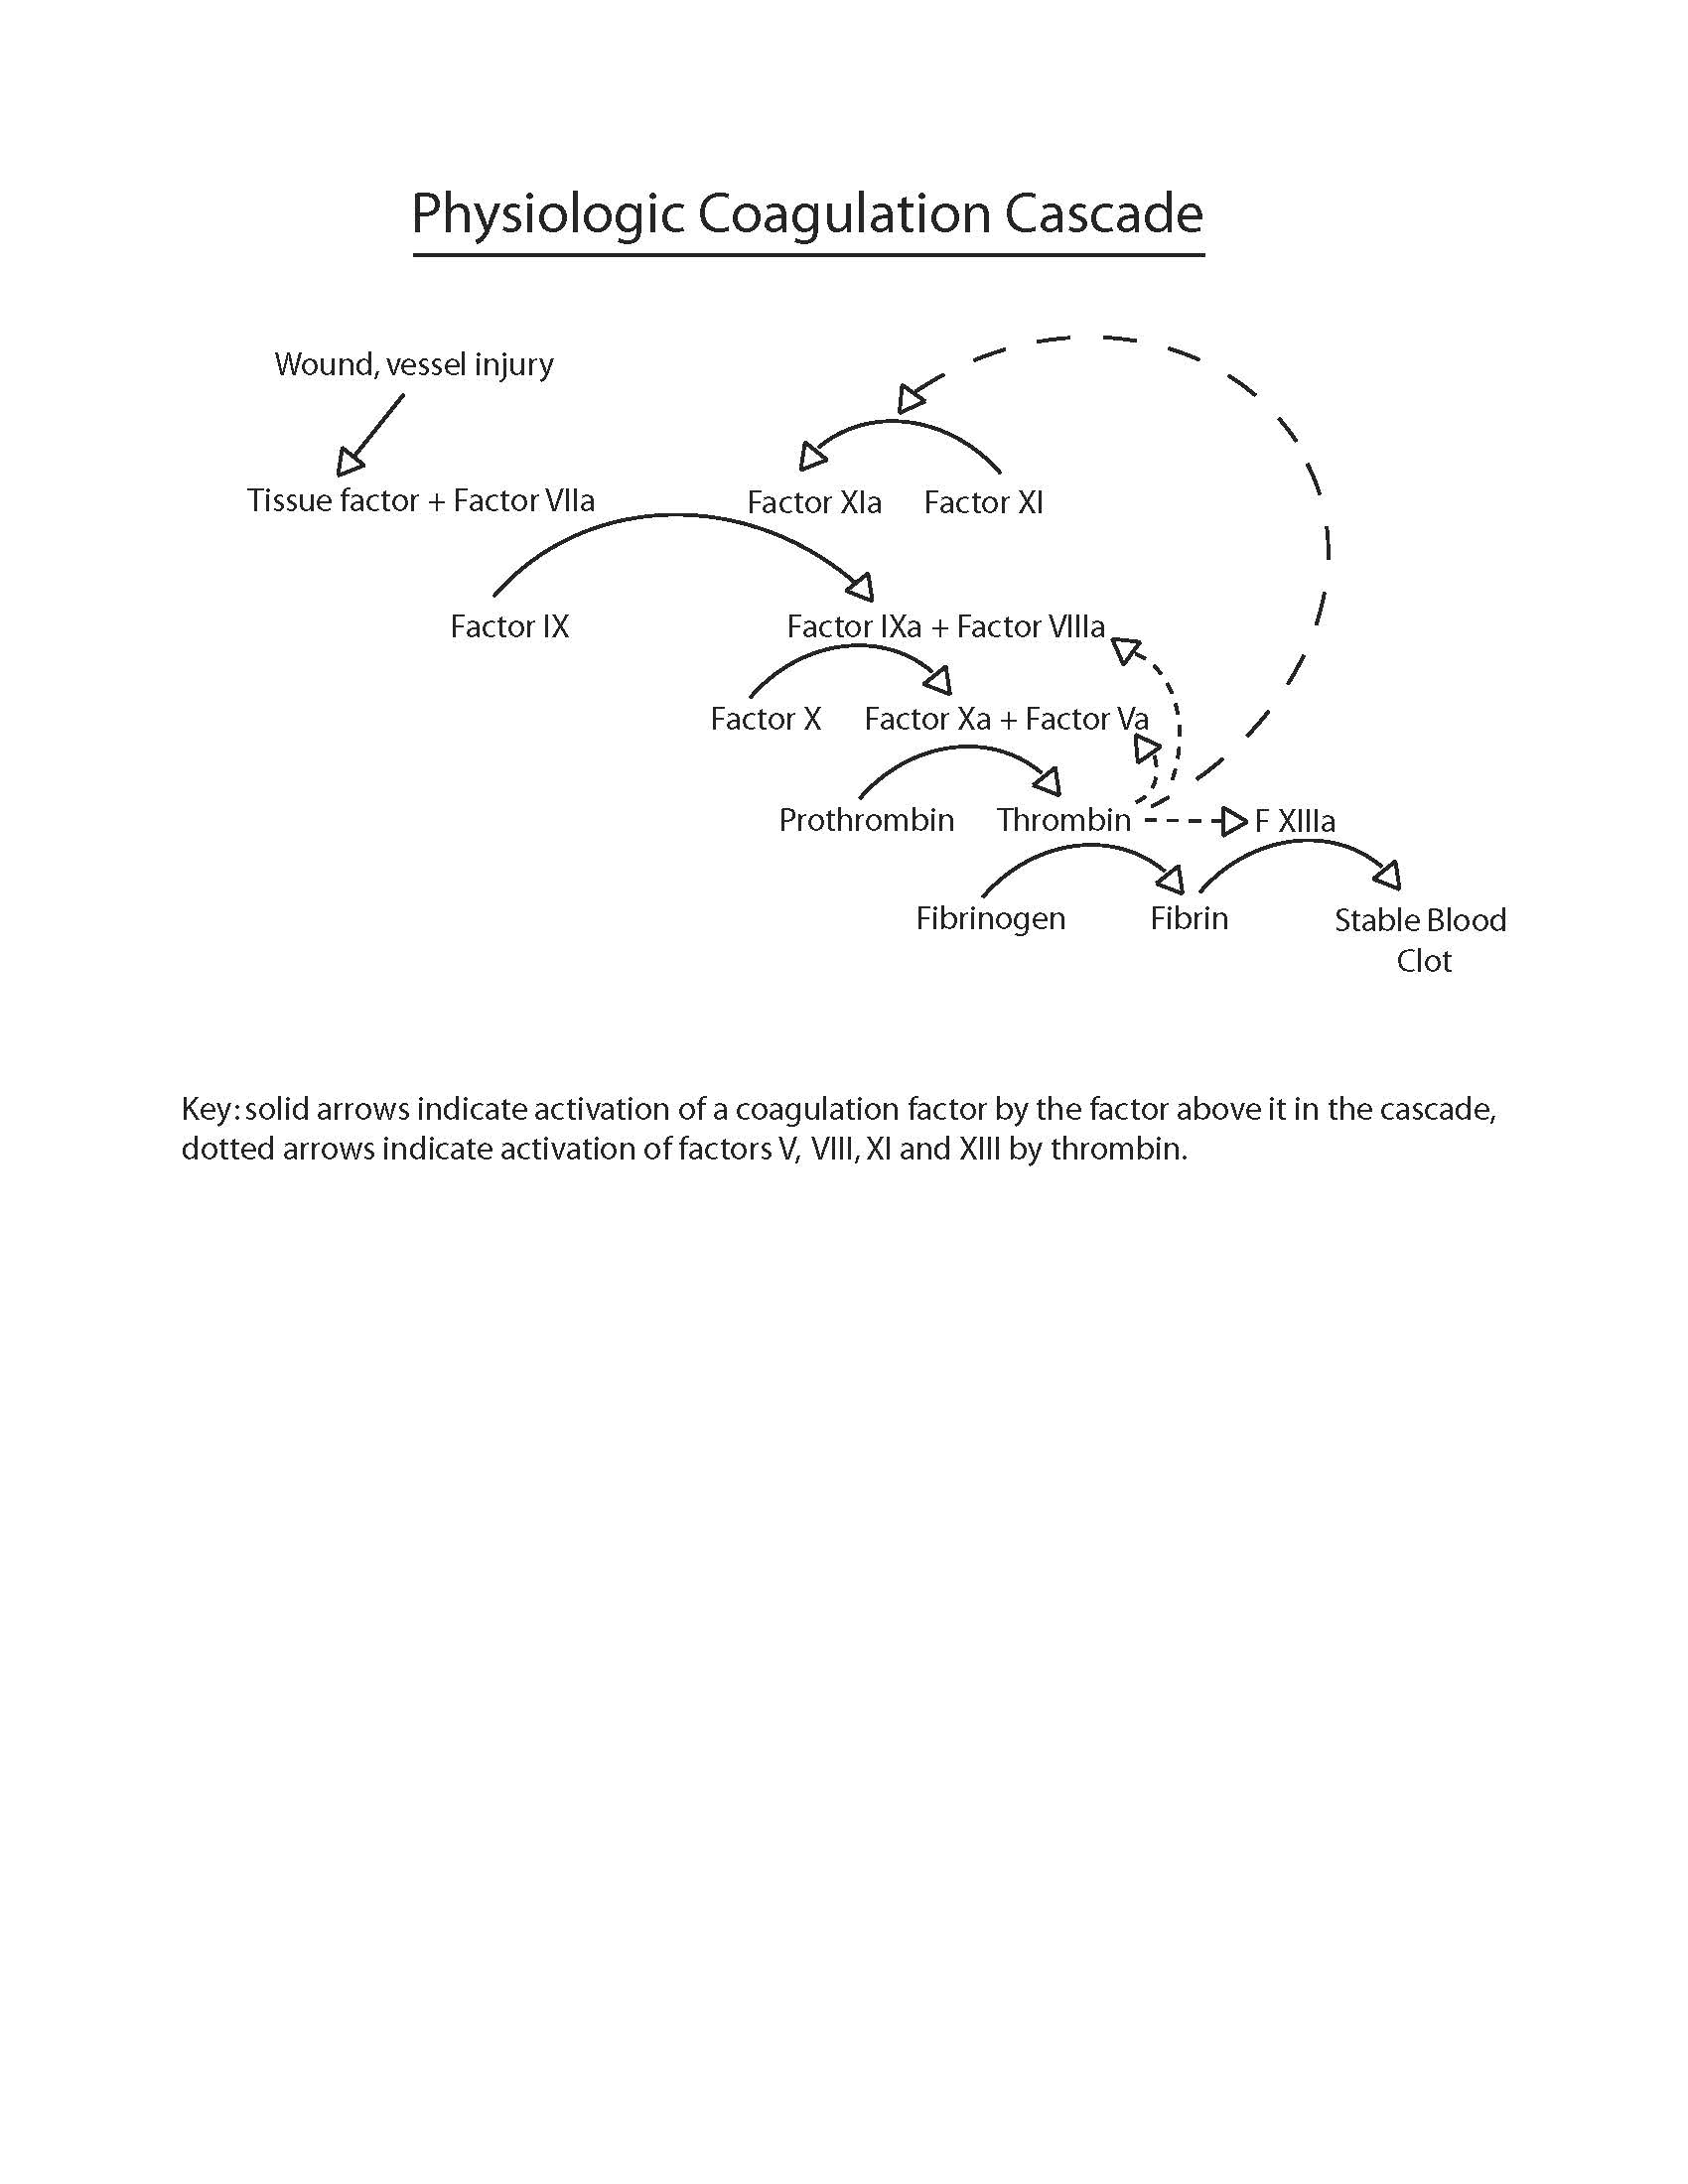 Diagram of the physiologic coagulation cascade